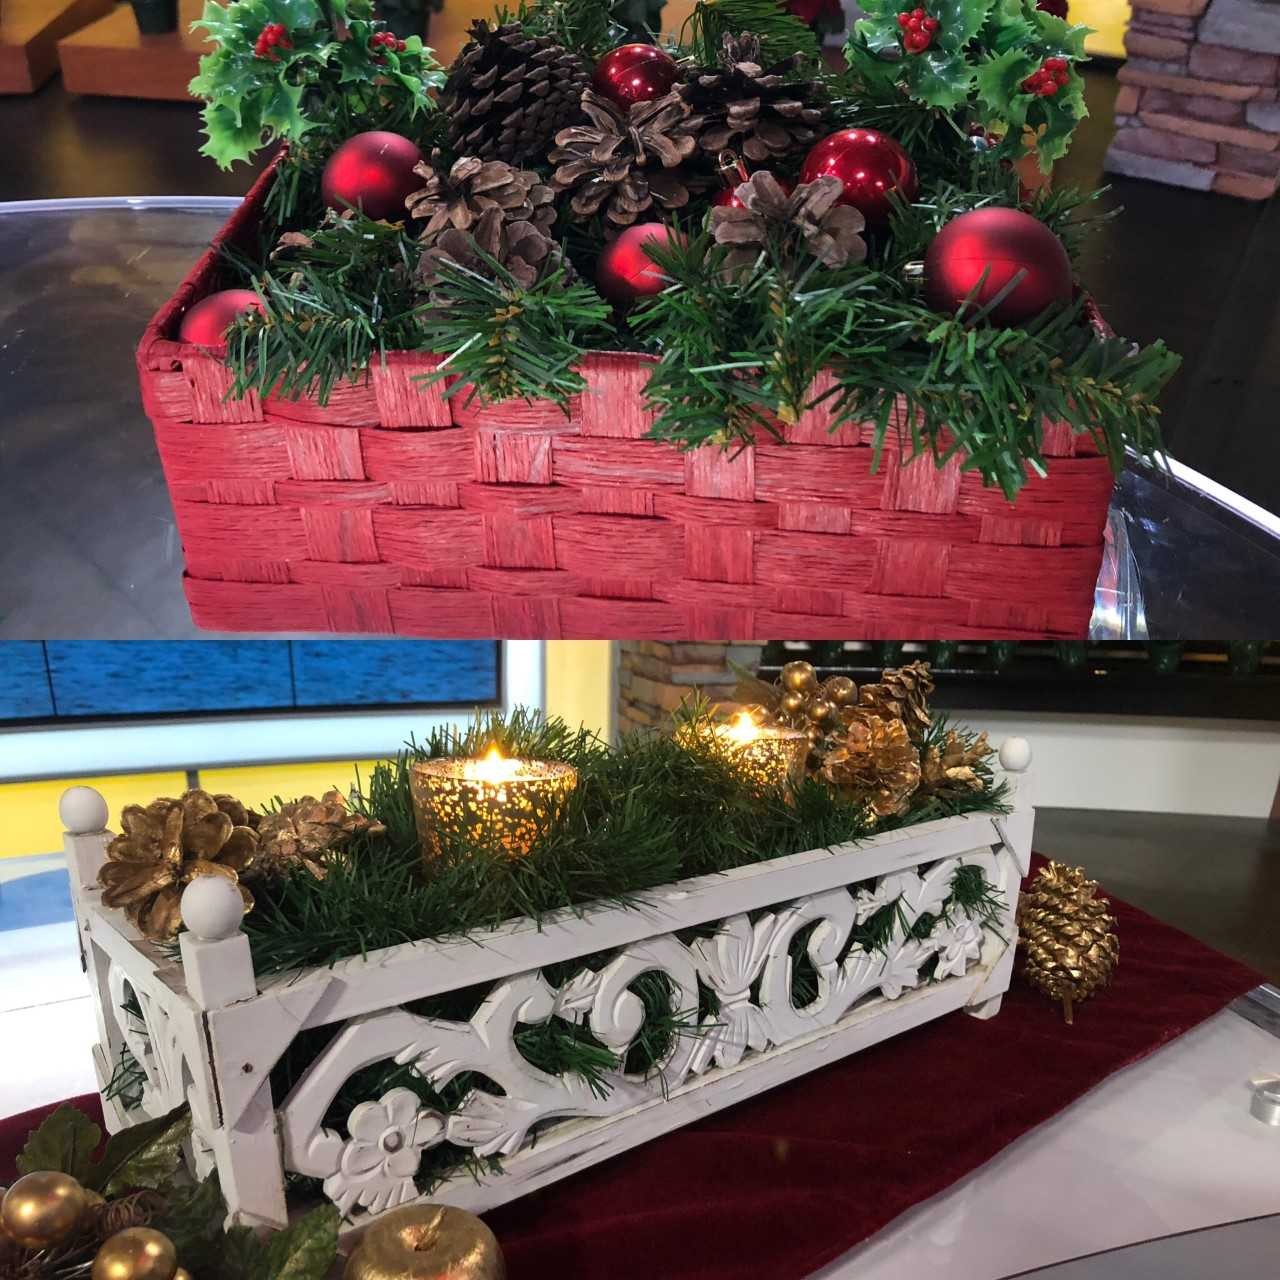 Goodwill challenges Wake Up Wisconsin anchors to holiday crafting contest